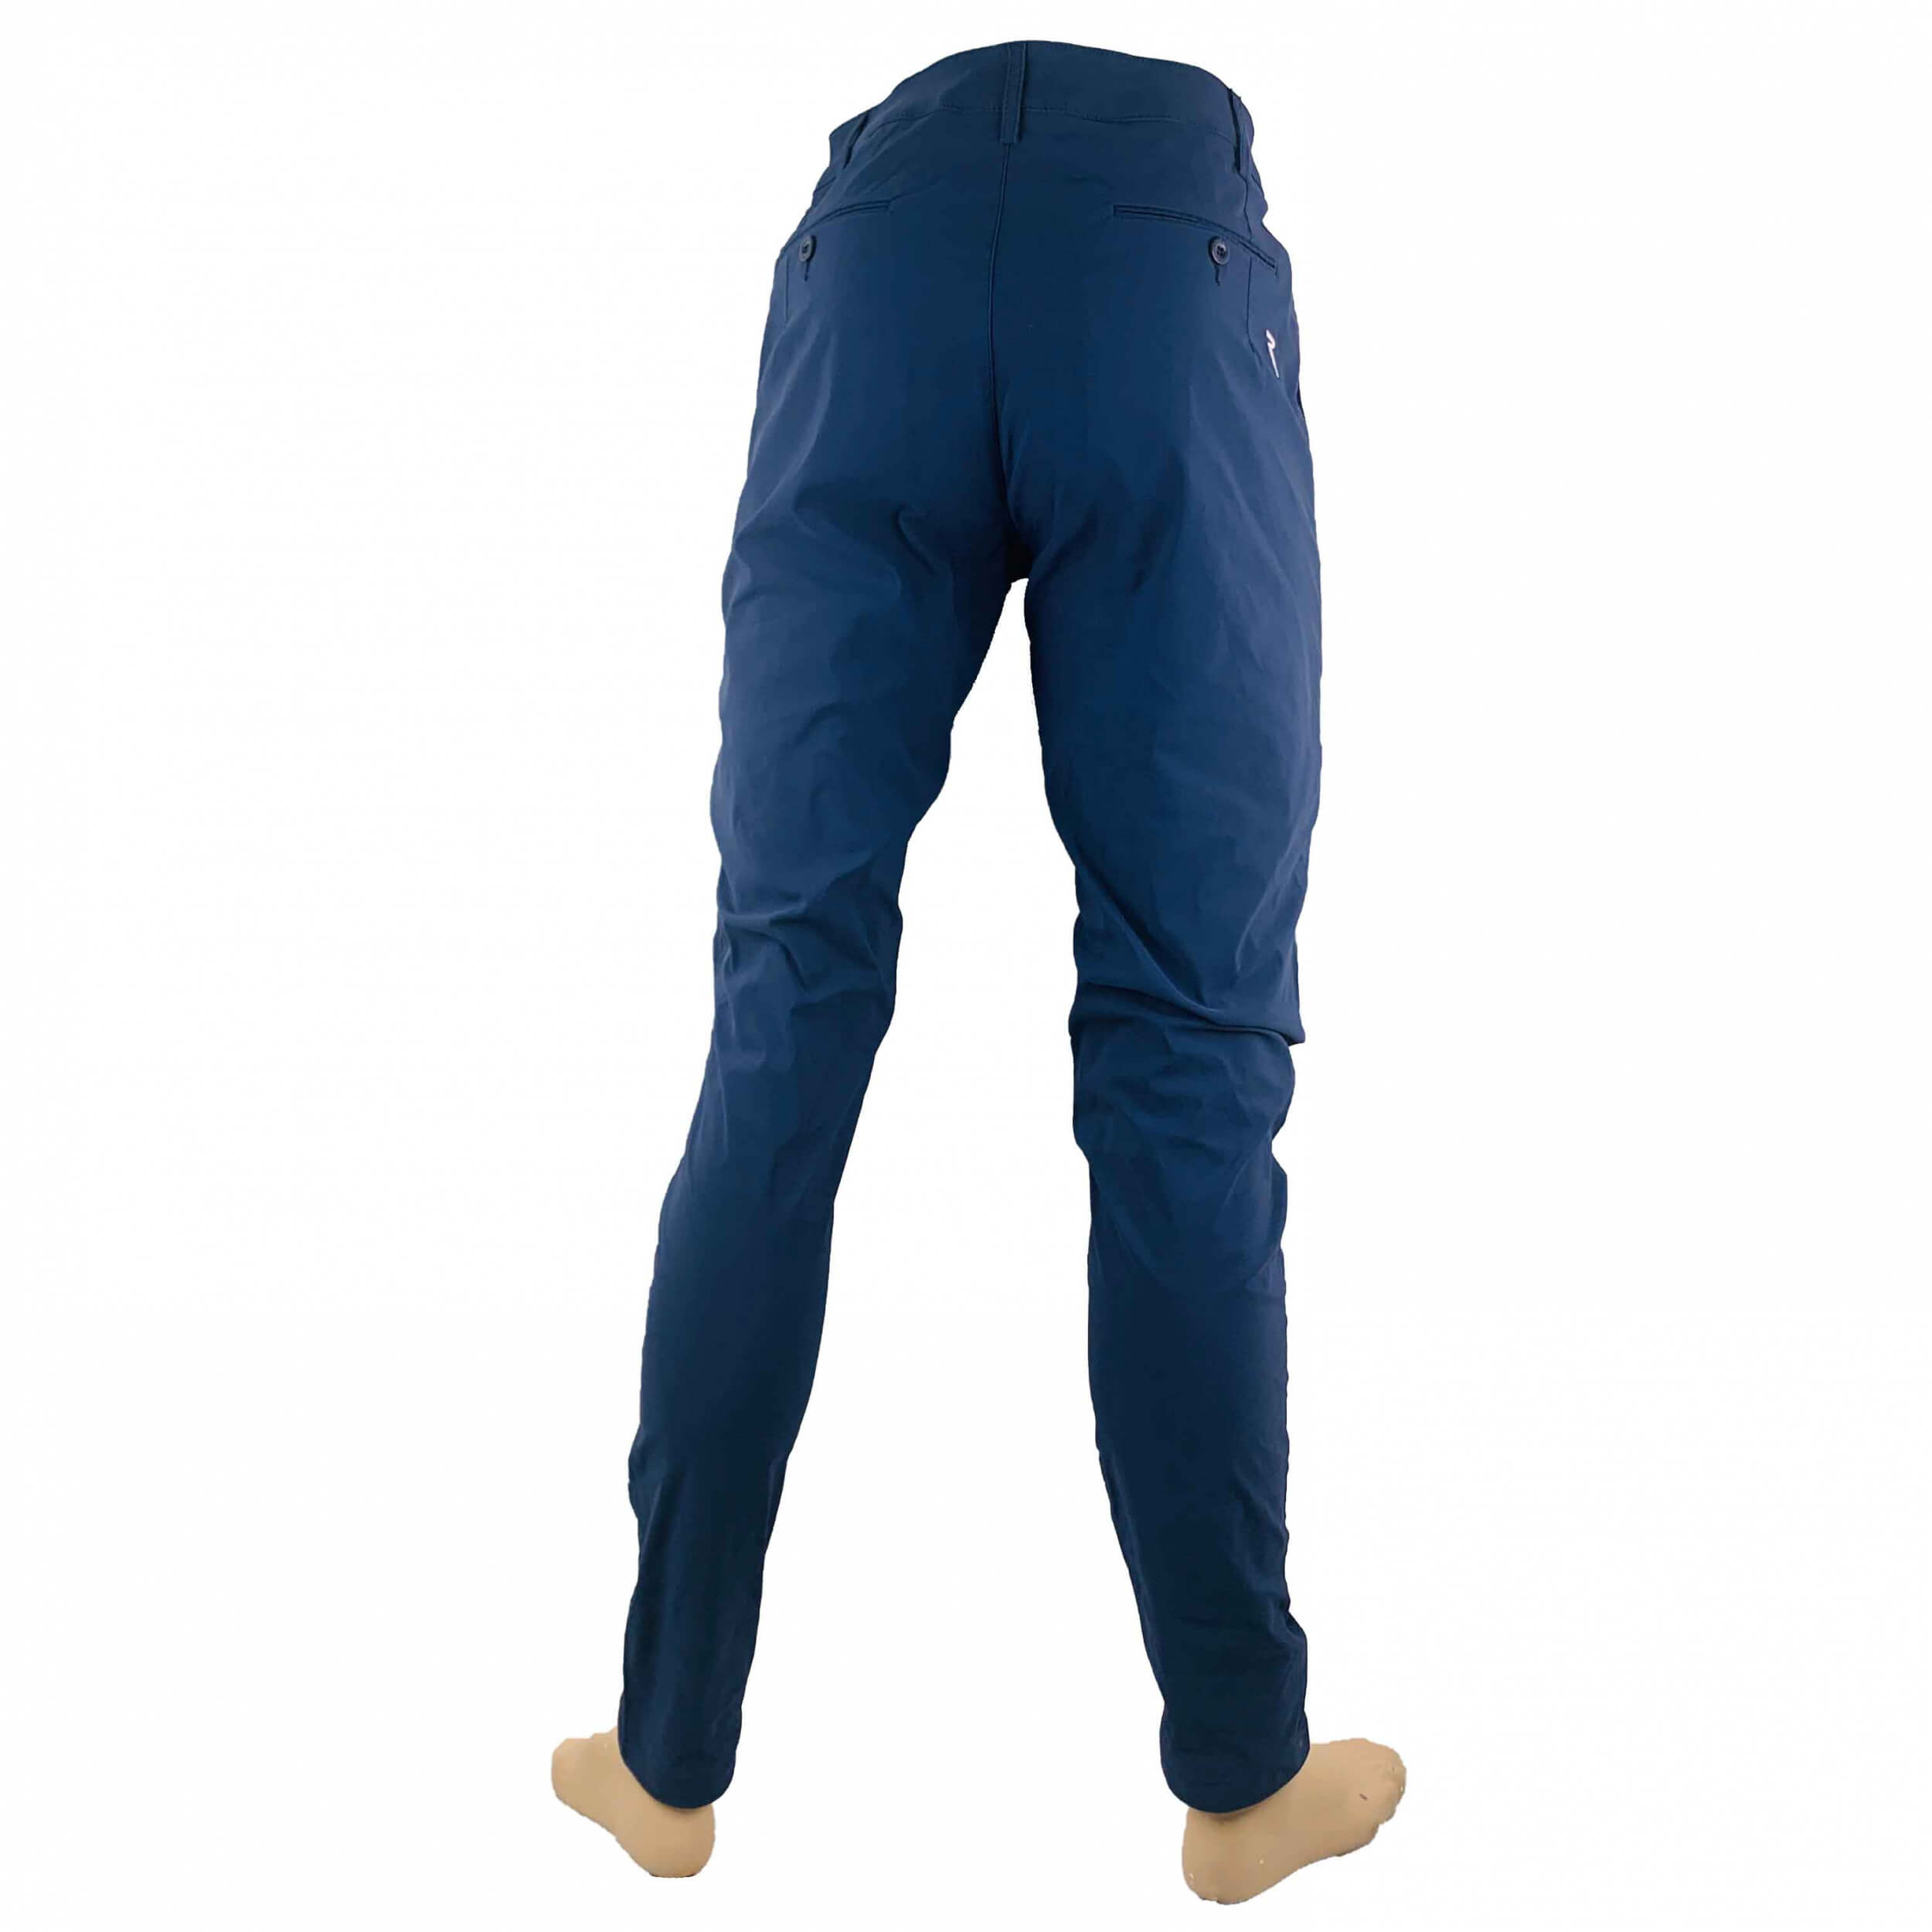 Chervo Herren Hose Space DRY MATIC navy 599